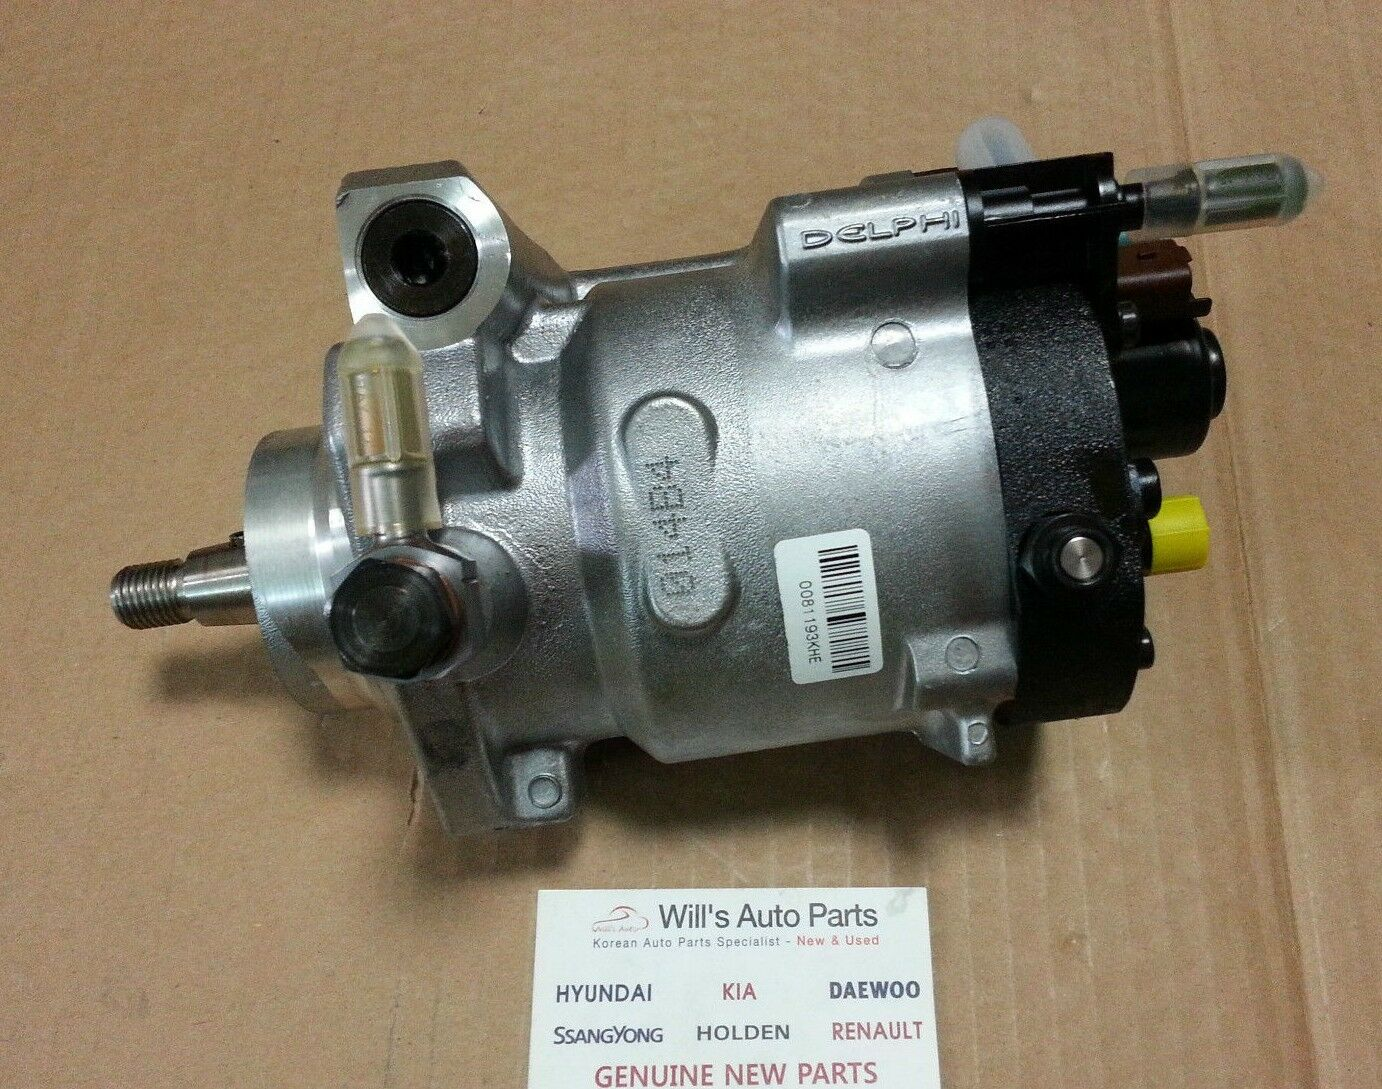 Genuine Brand New Diesel Fuel Pump Suits Hyundai Terracan 2004 2011 Santa Fe Replacement 29l 1 Of 4only 5 Available See More